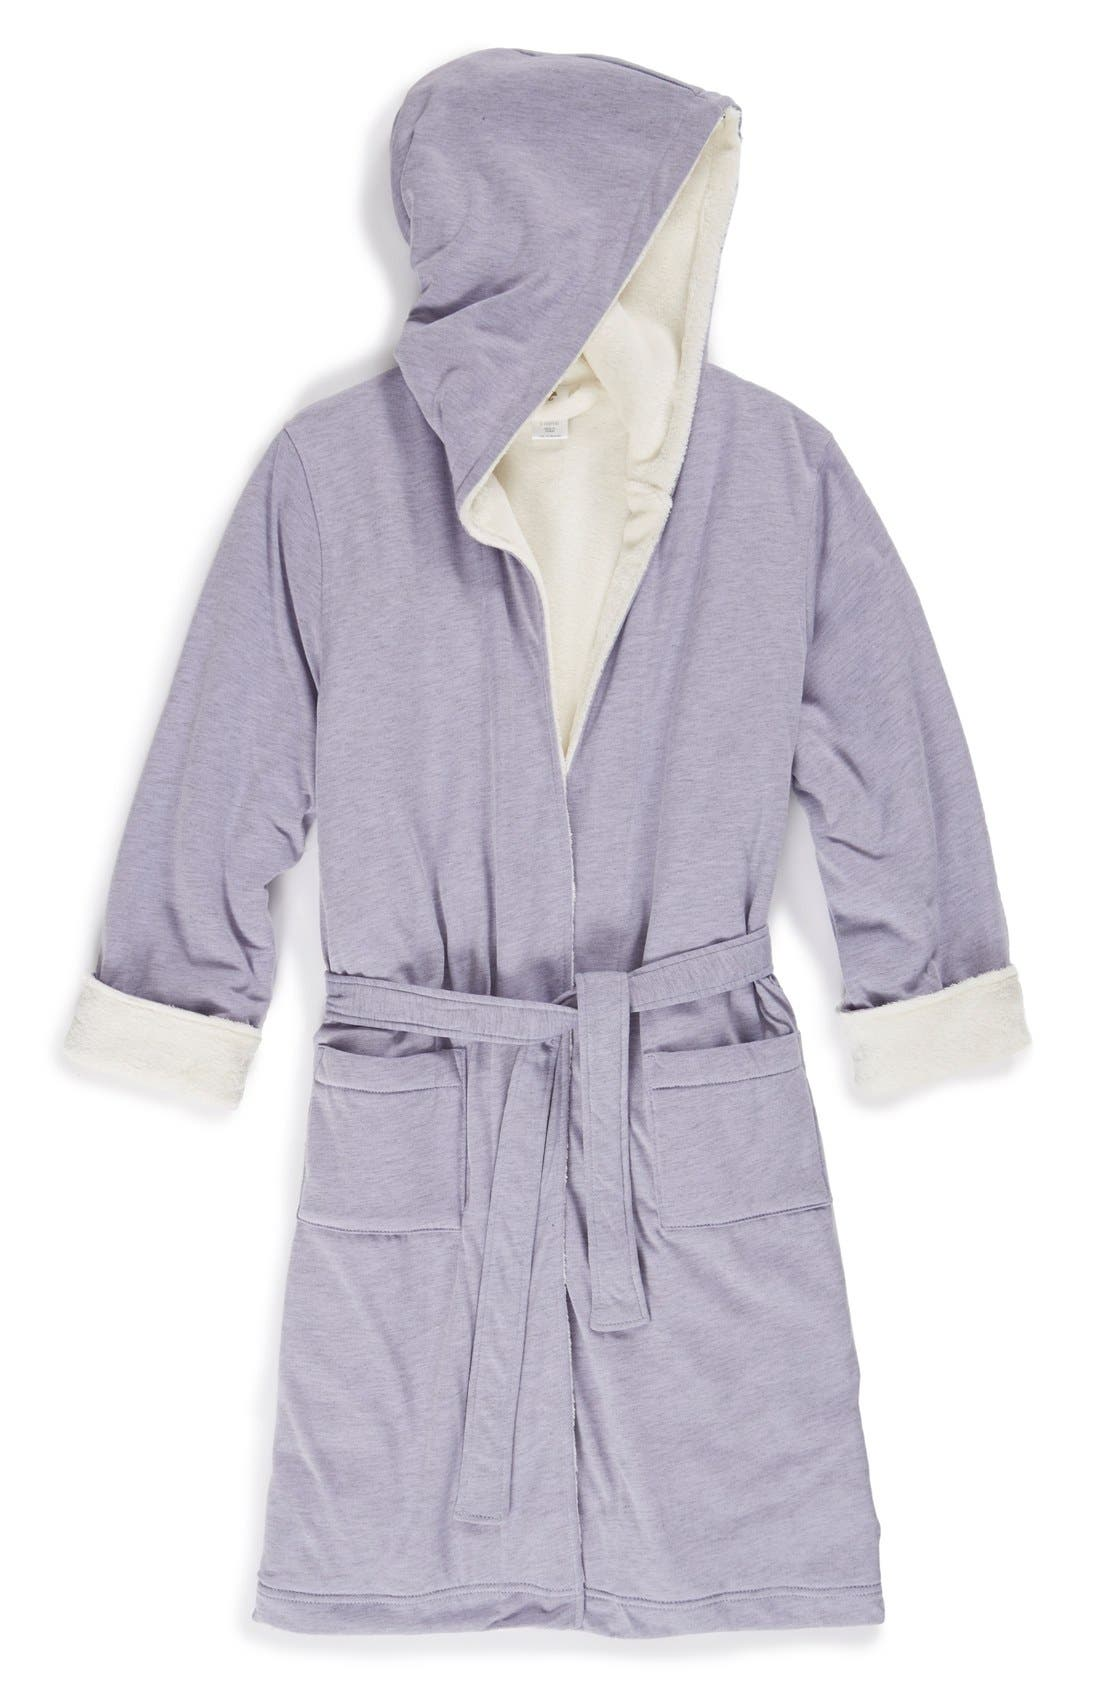 Alternate Image 1 Selected - Tucker + Tate Fluffy Hooded Robe (Little Girls & Big Girls)